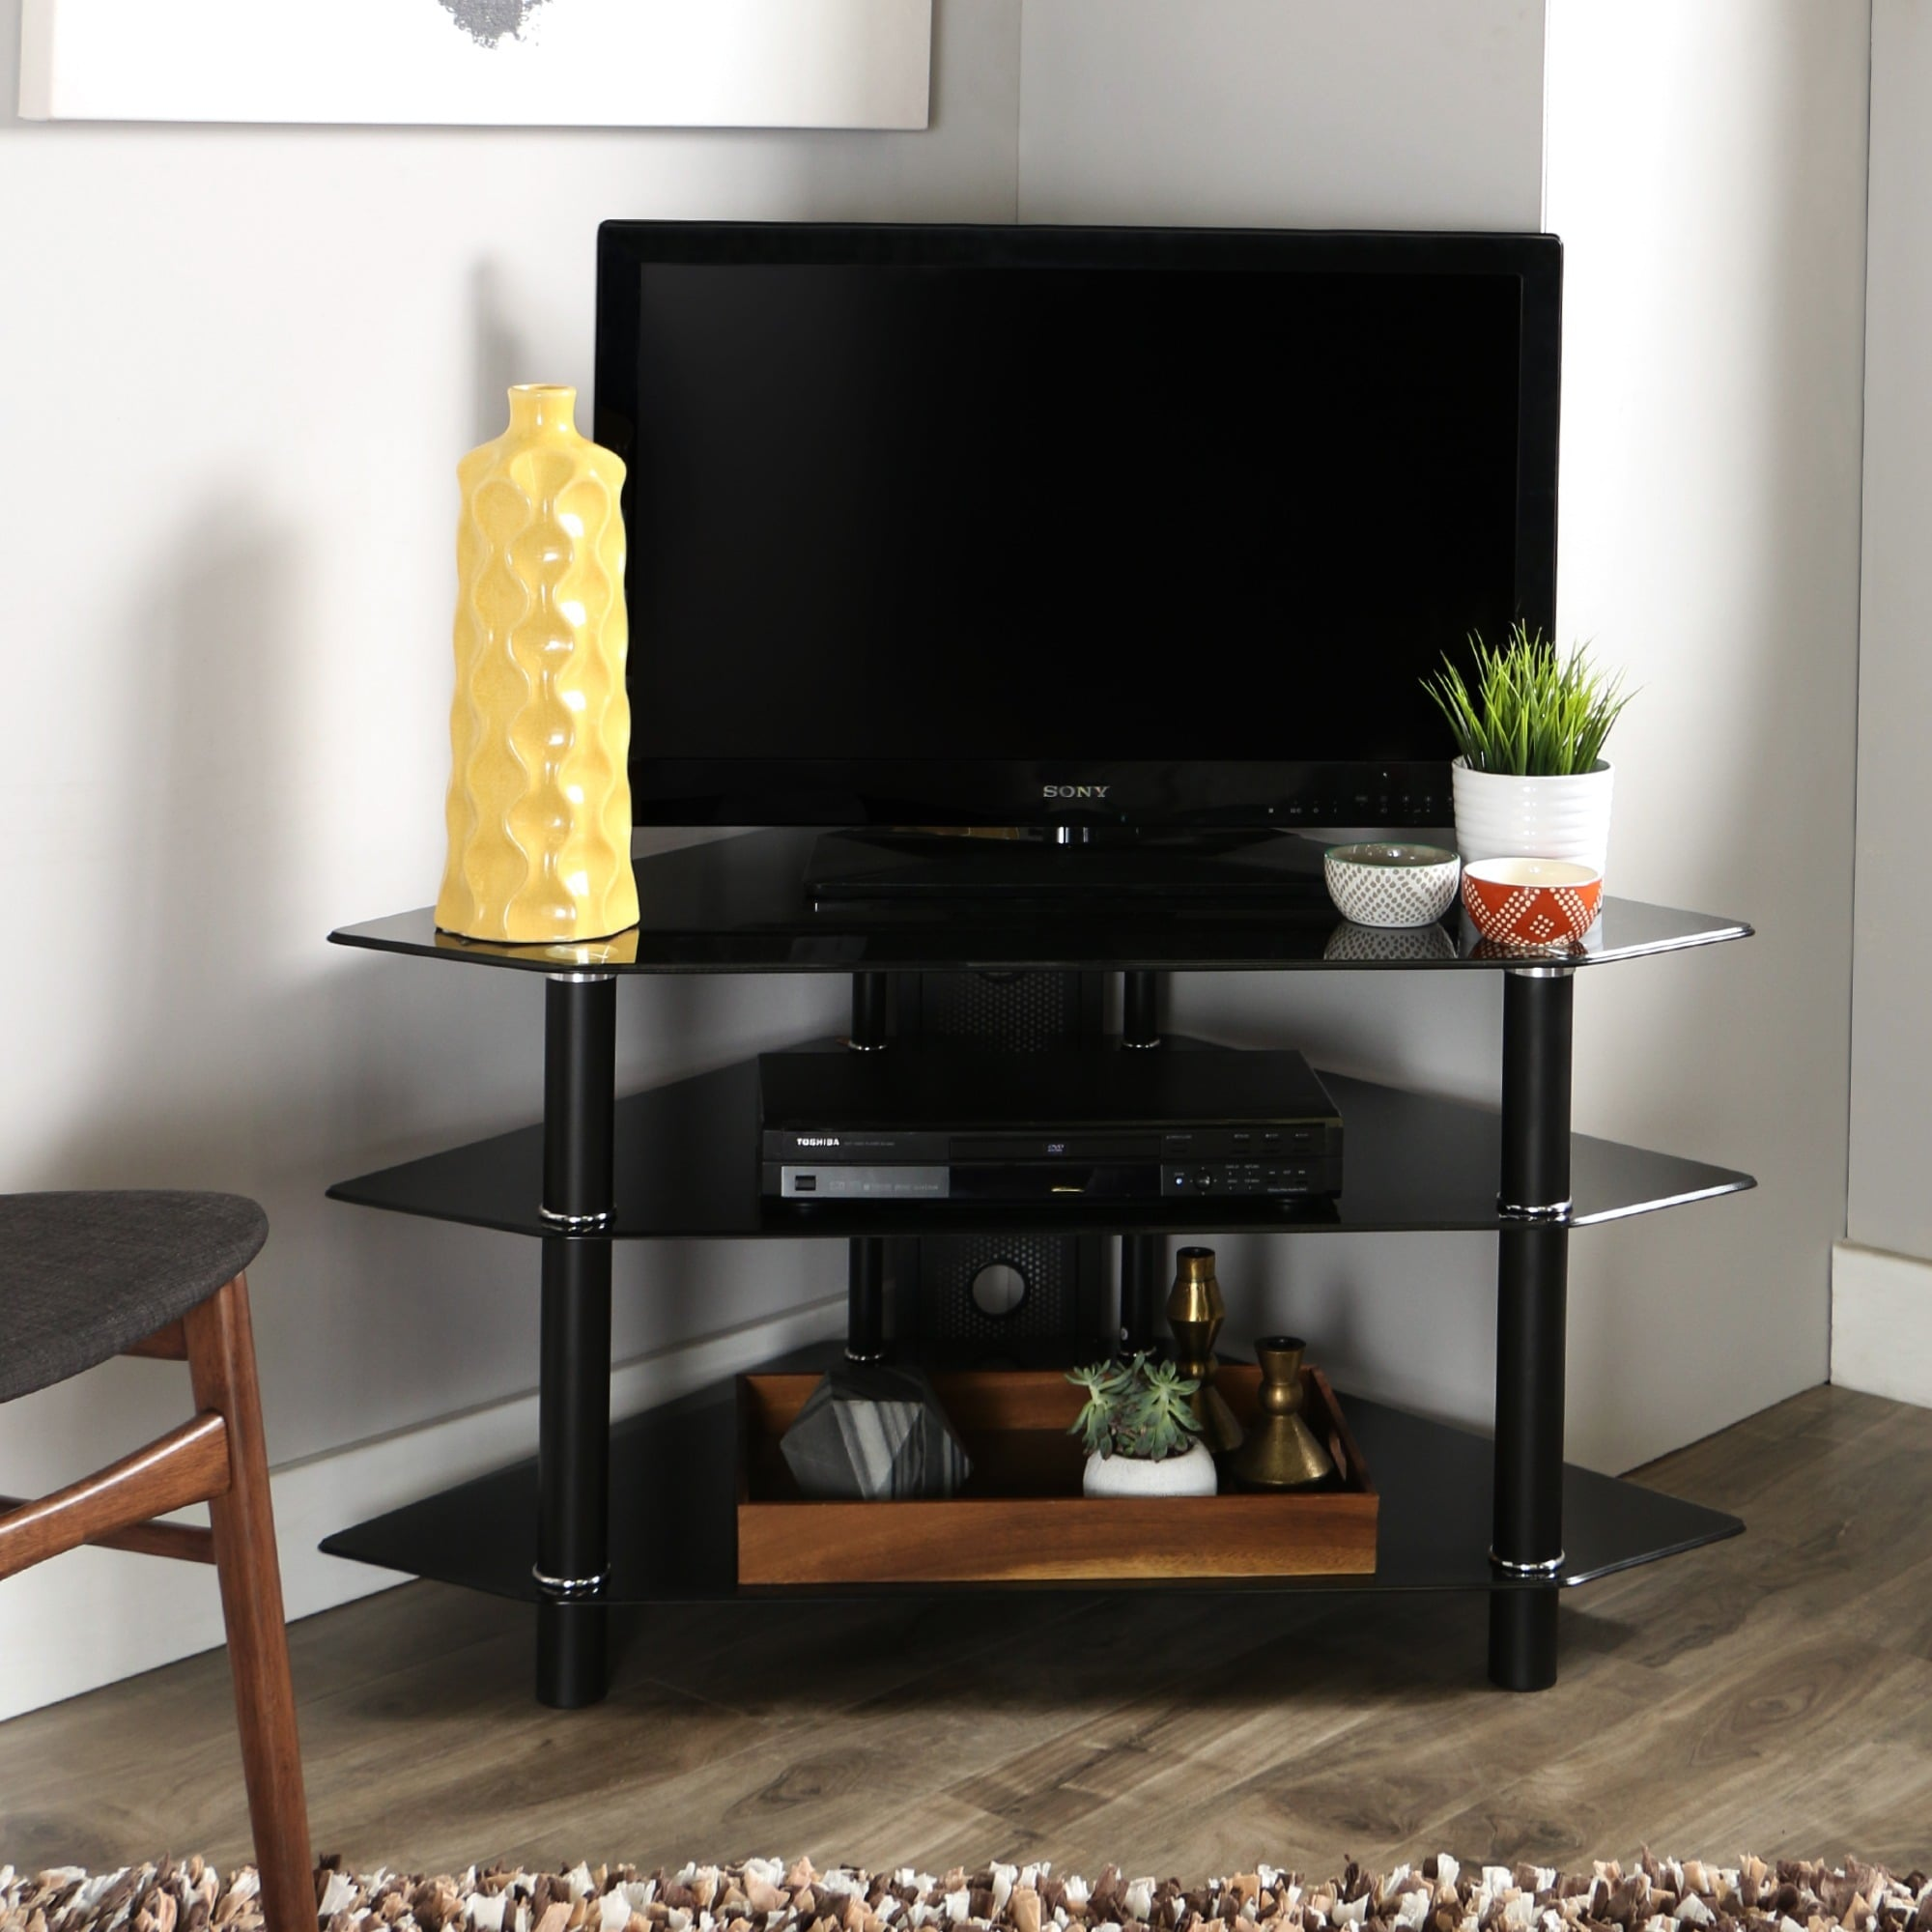 seneca shelf storage media steel stand rack corner itm contemporary entertainment simple frame living tv